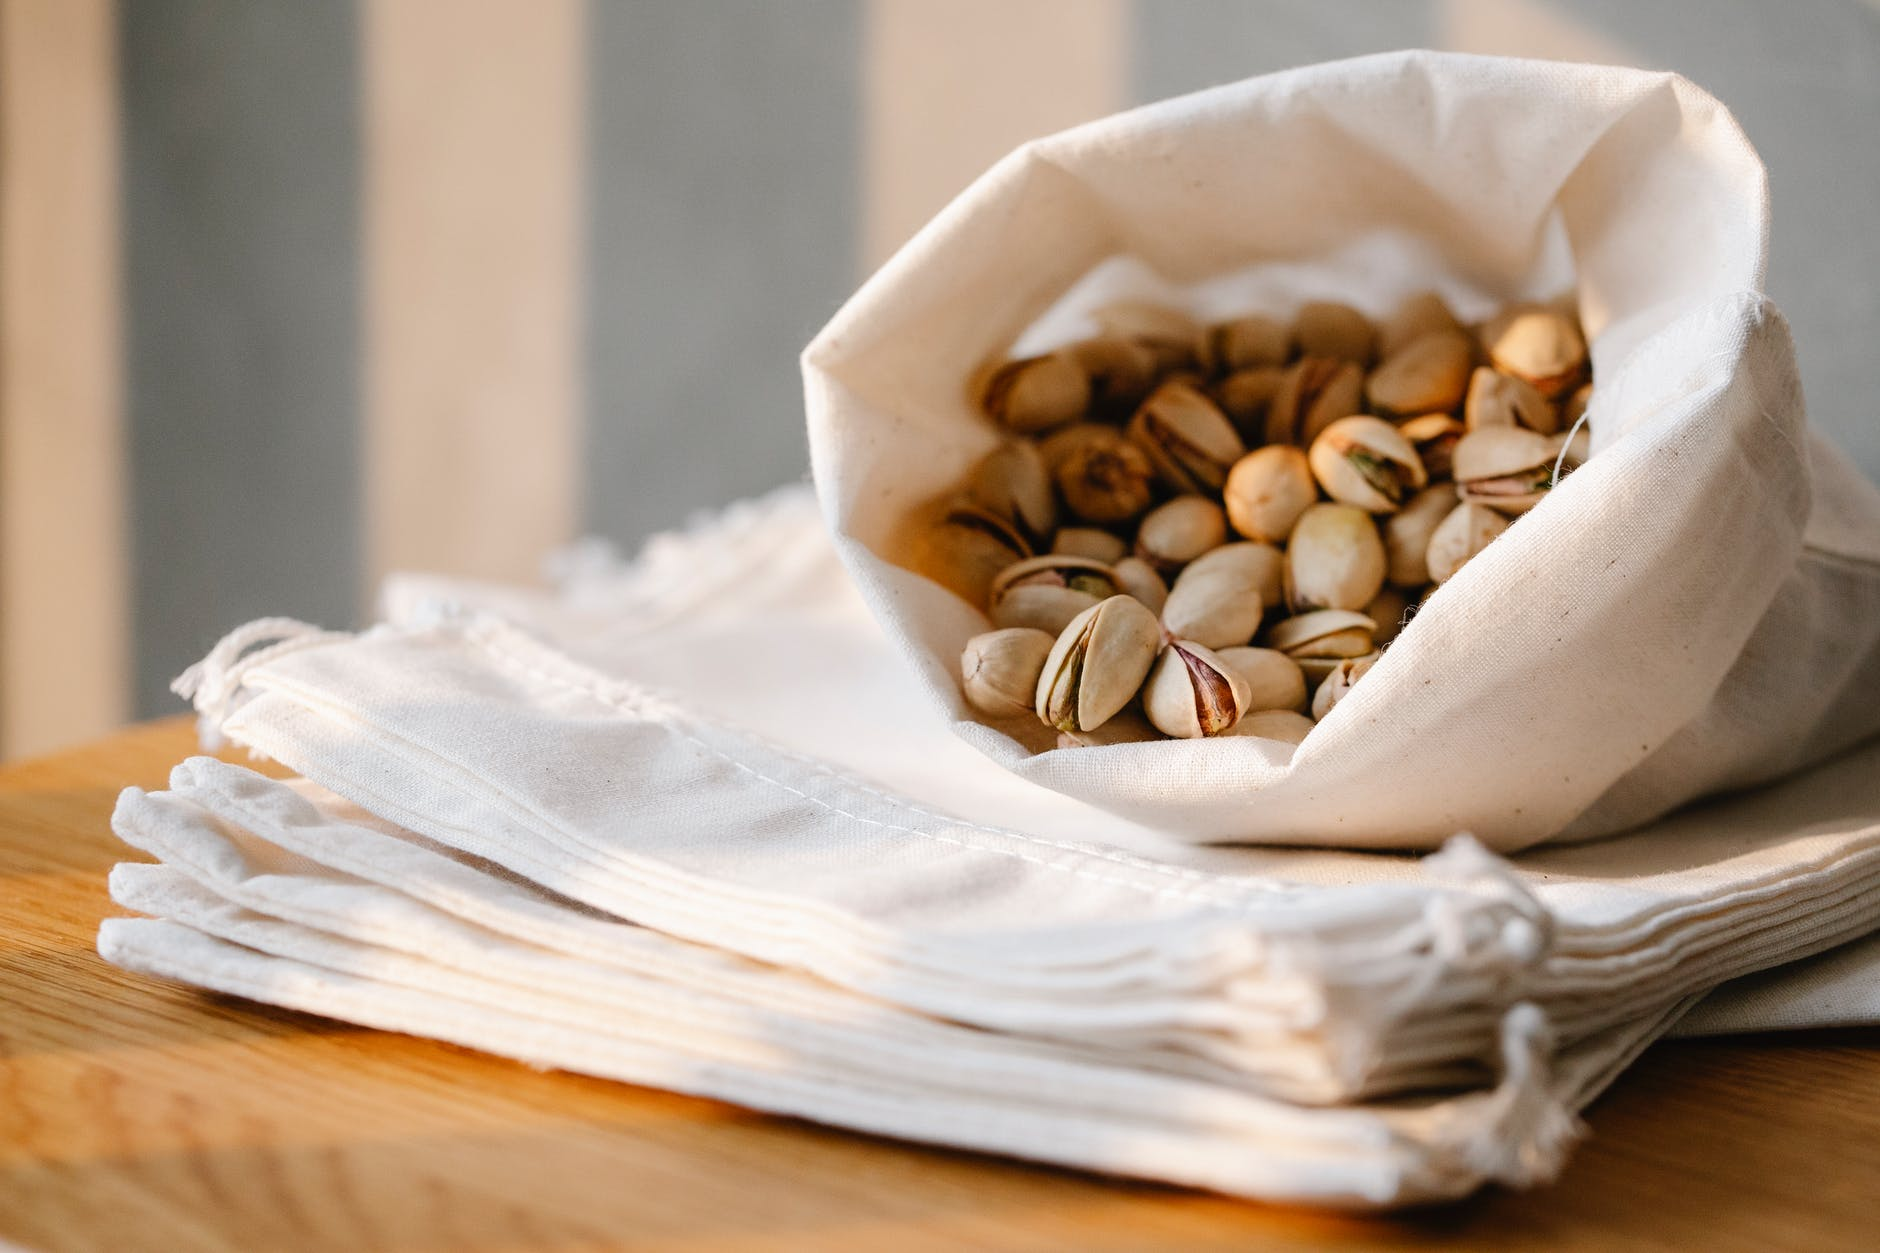 sack of pistachios on table